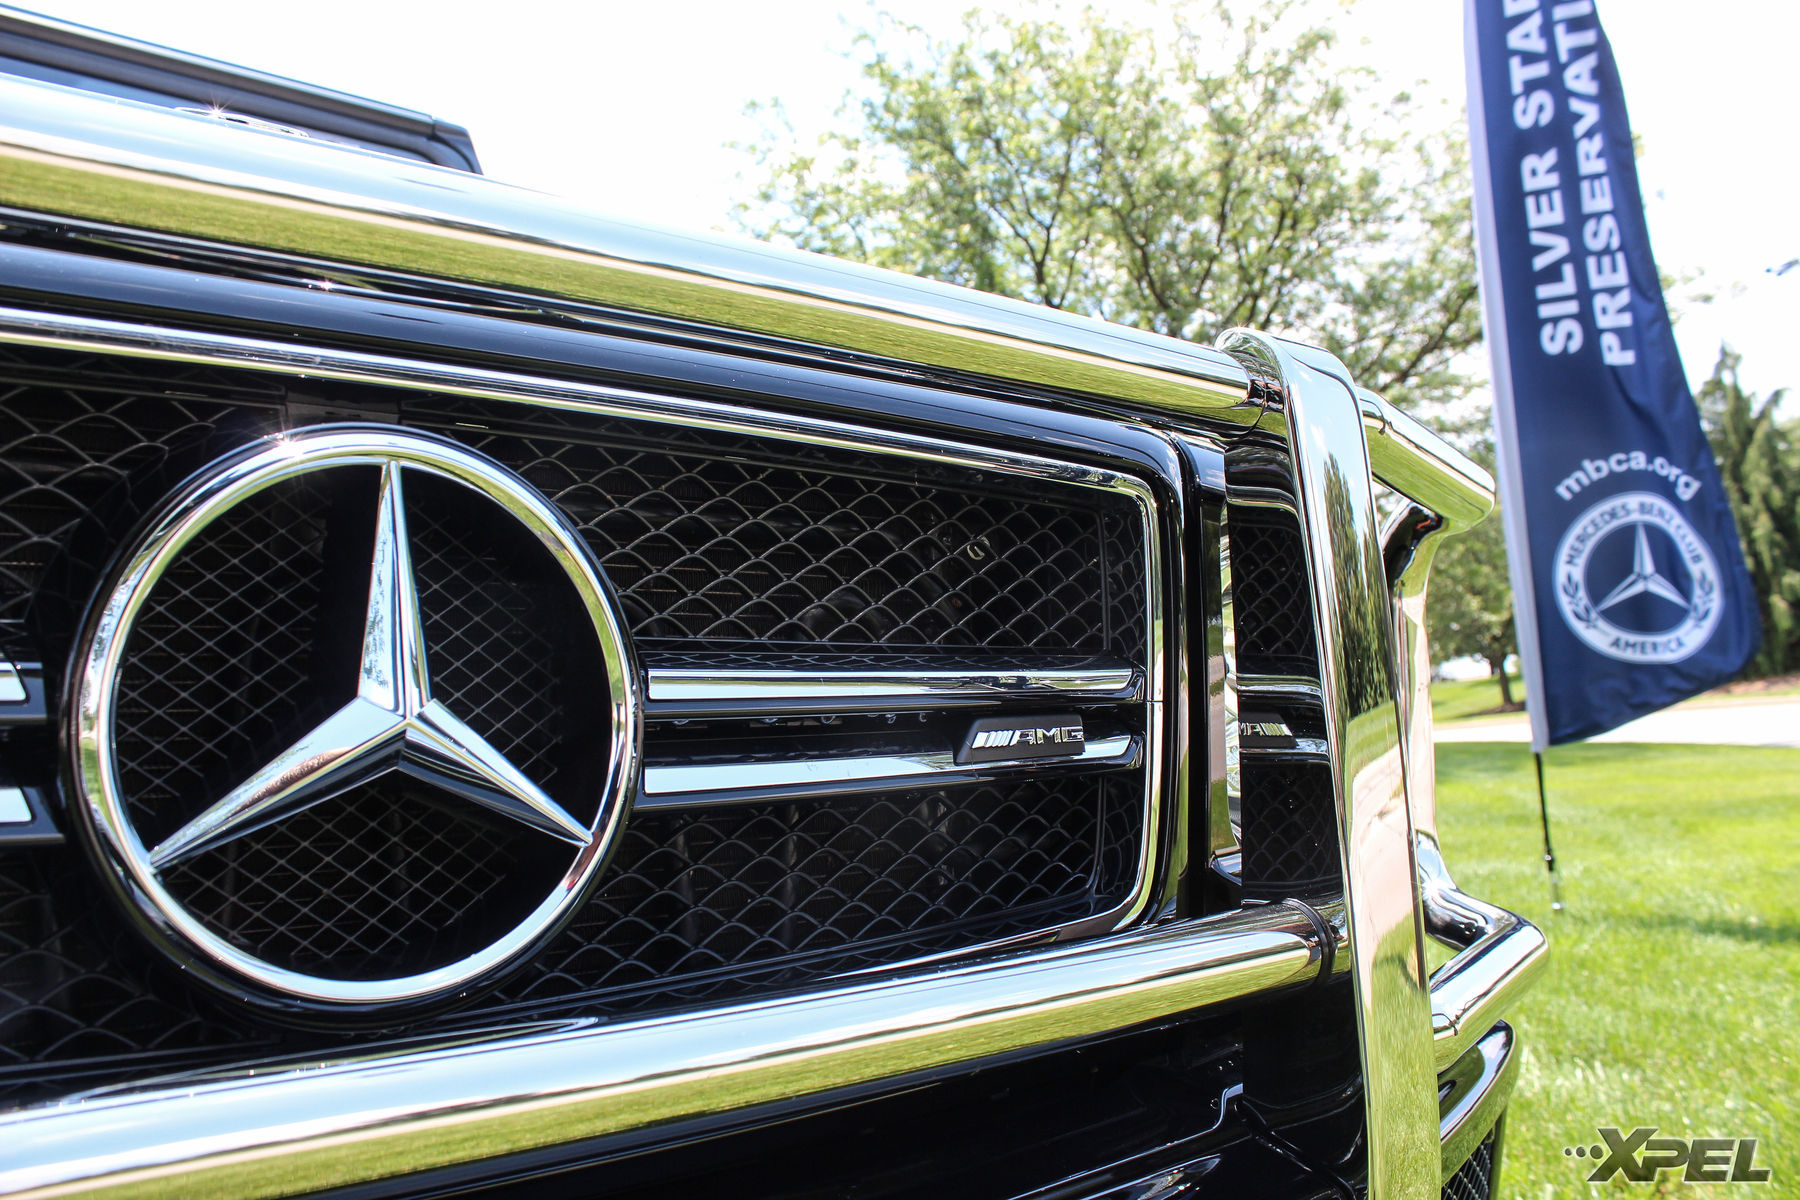 Mercedes-Benz G63 AMG | Close up of the G63 AMG